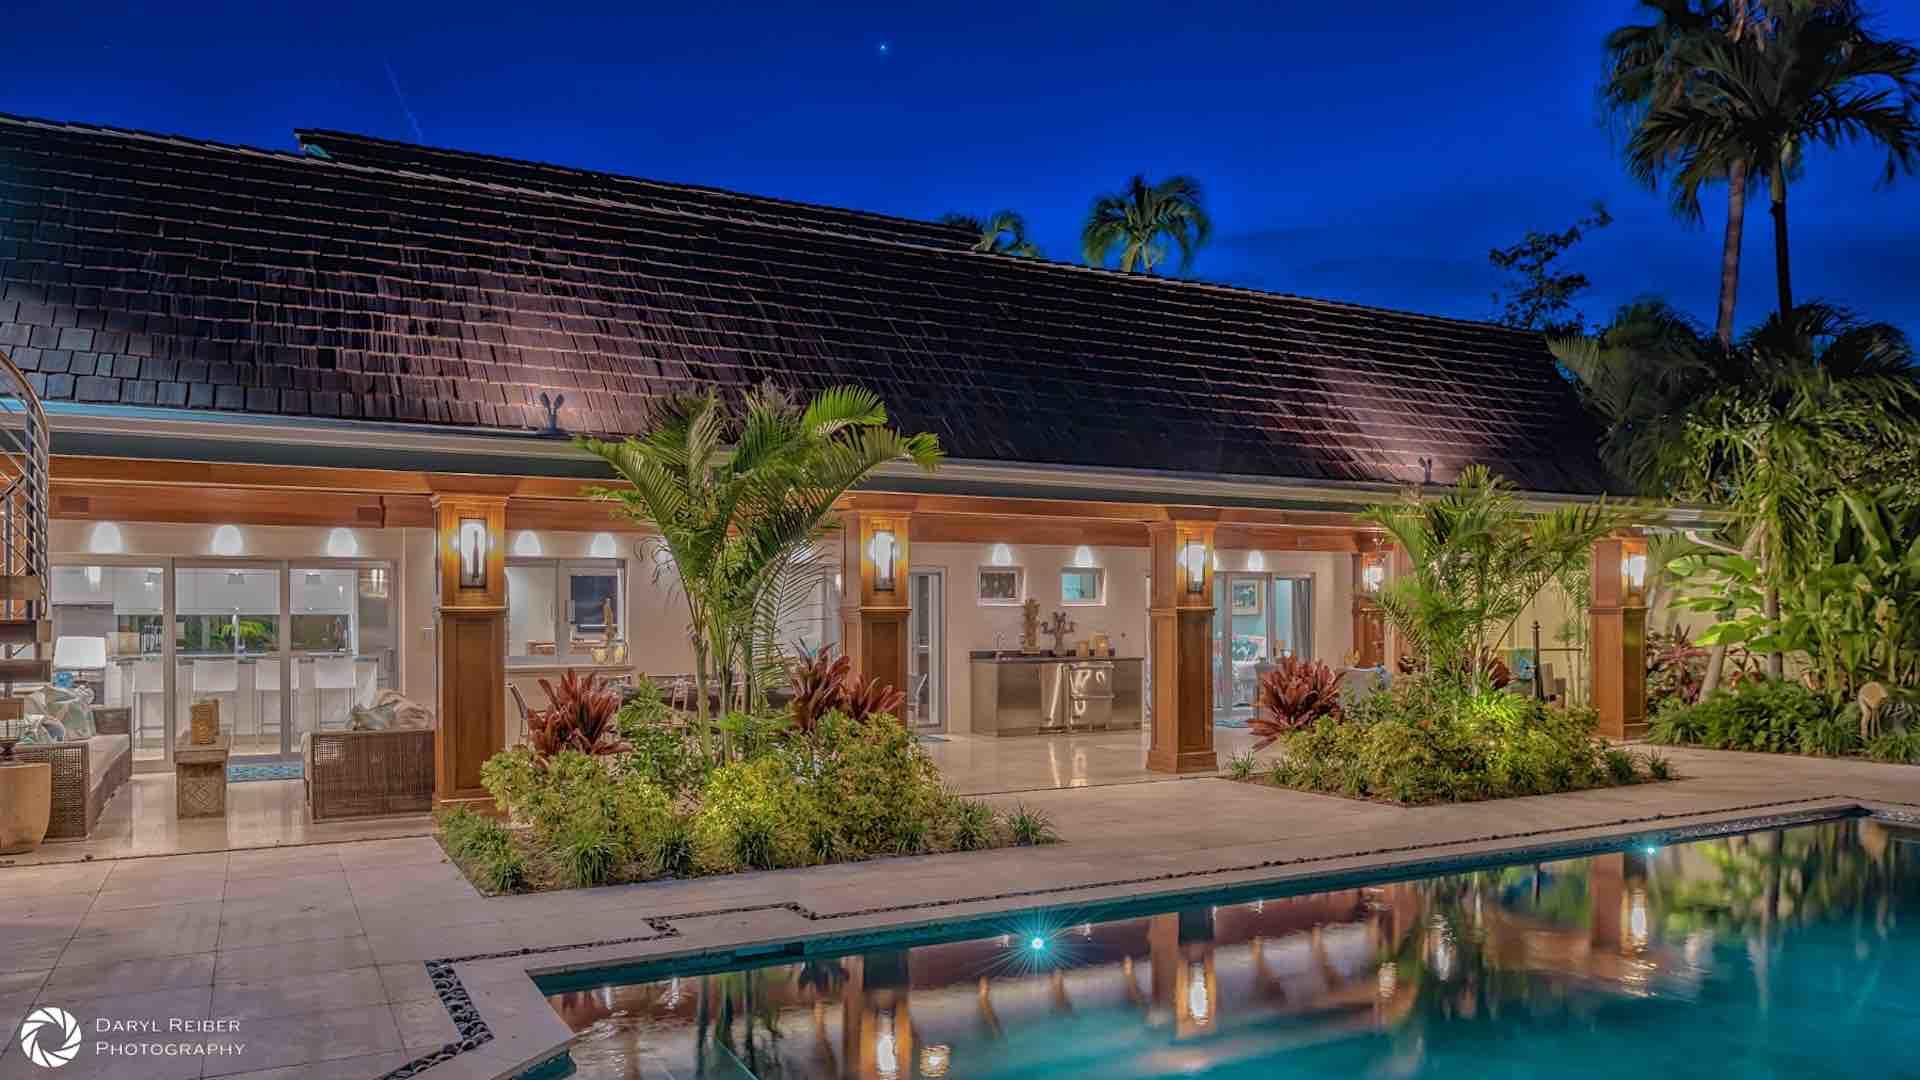 Outdoor and landscape lighting allow you to enjoy the pool and outdoor area even at night...